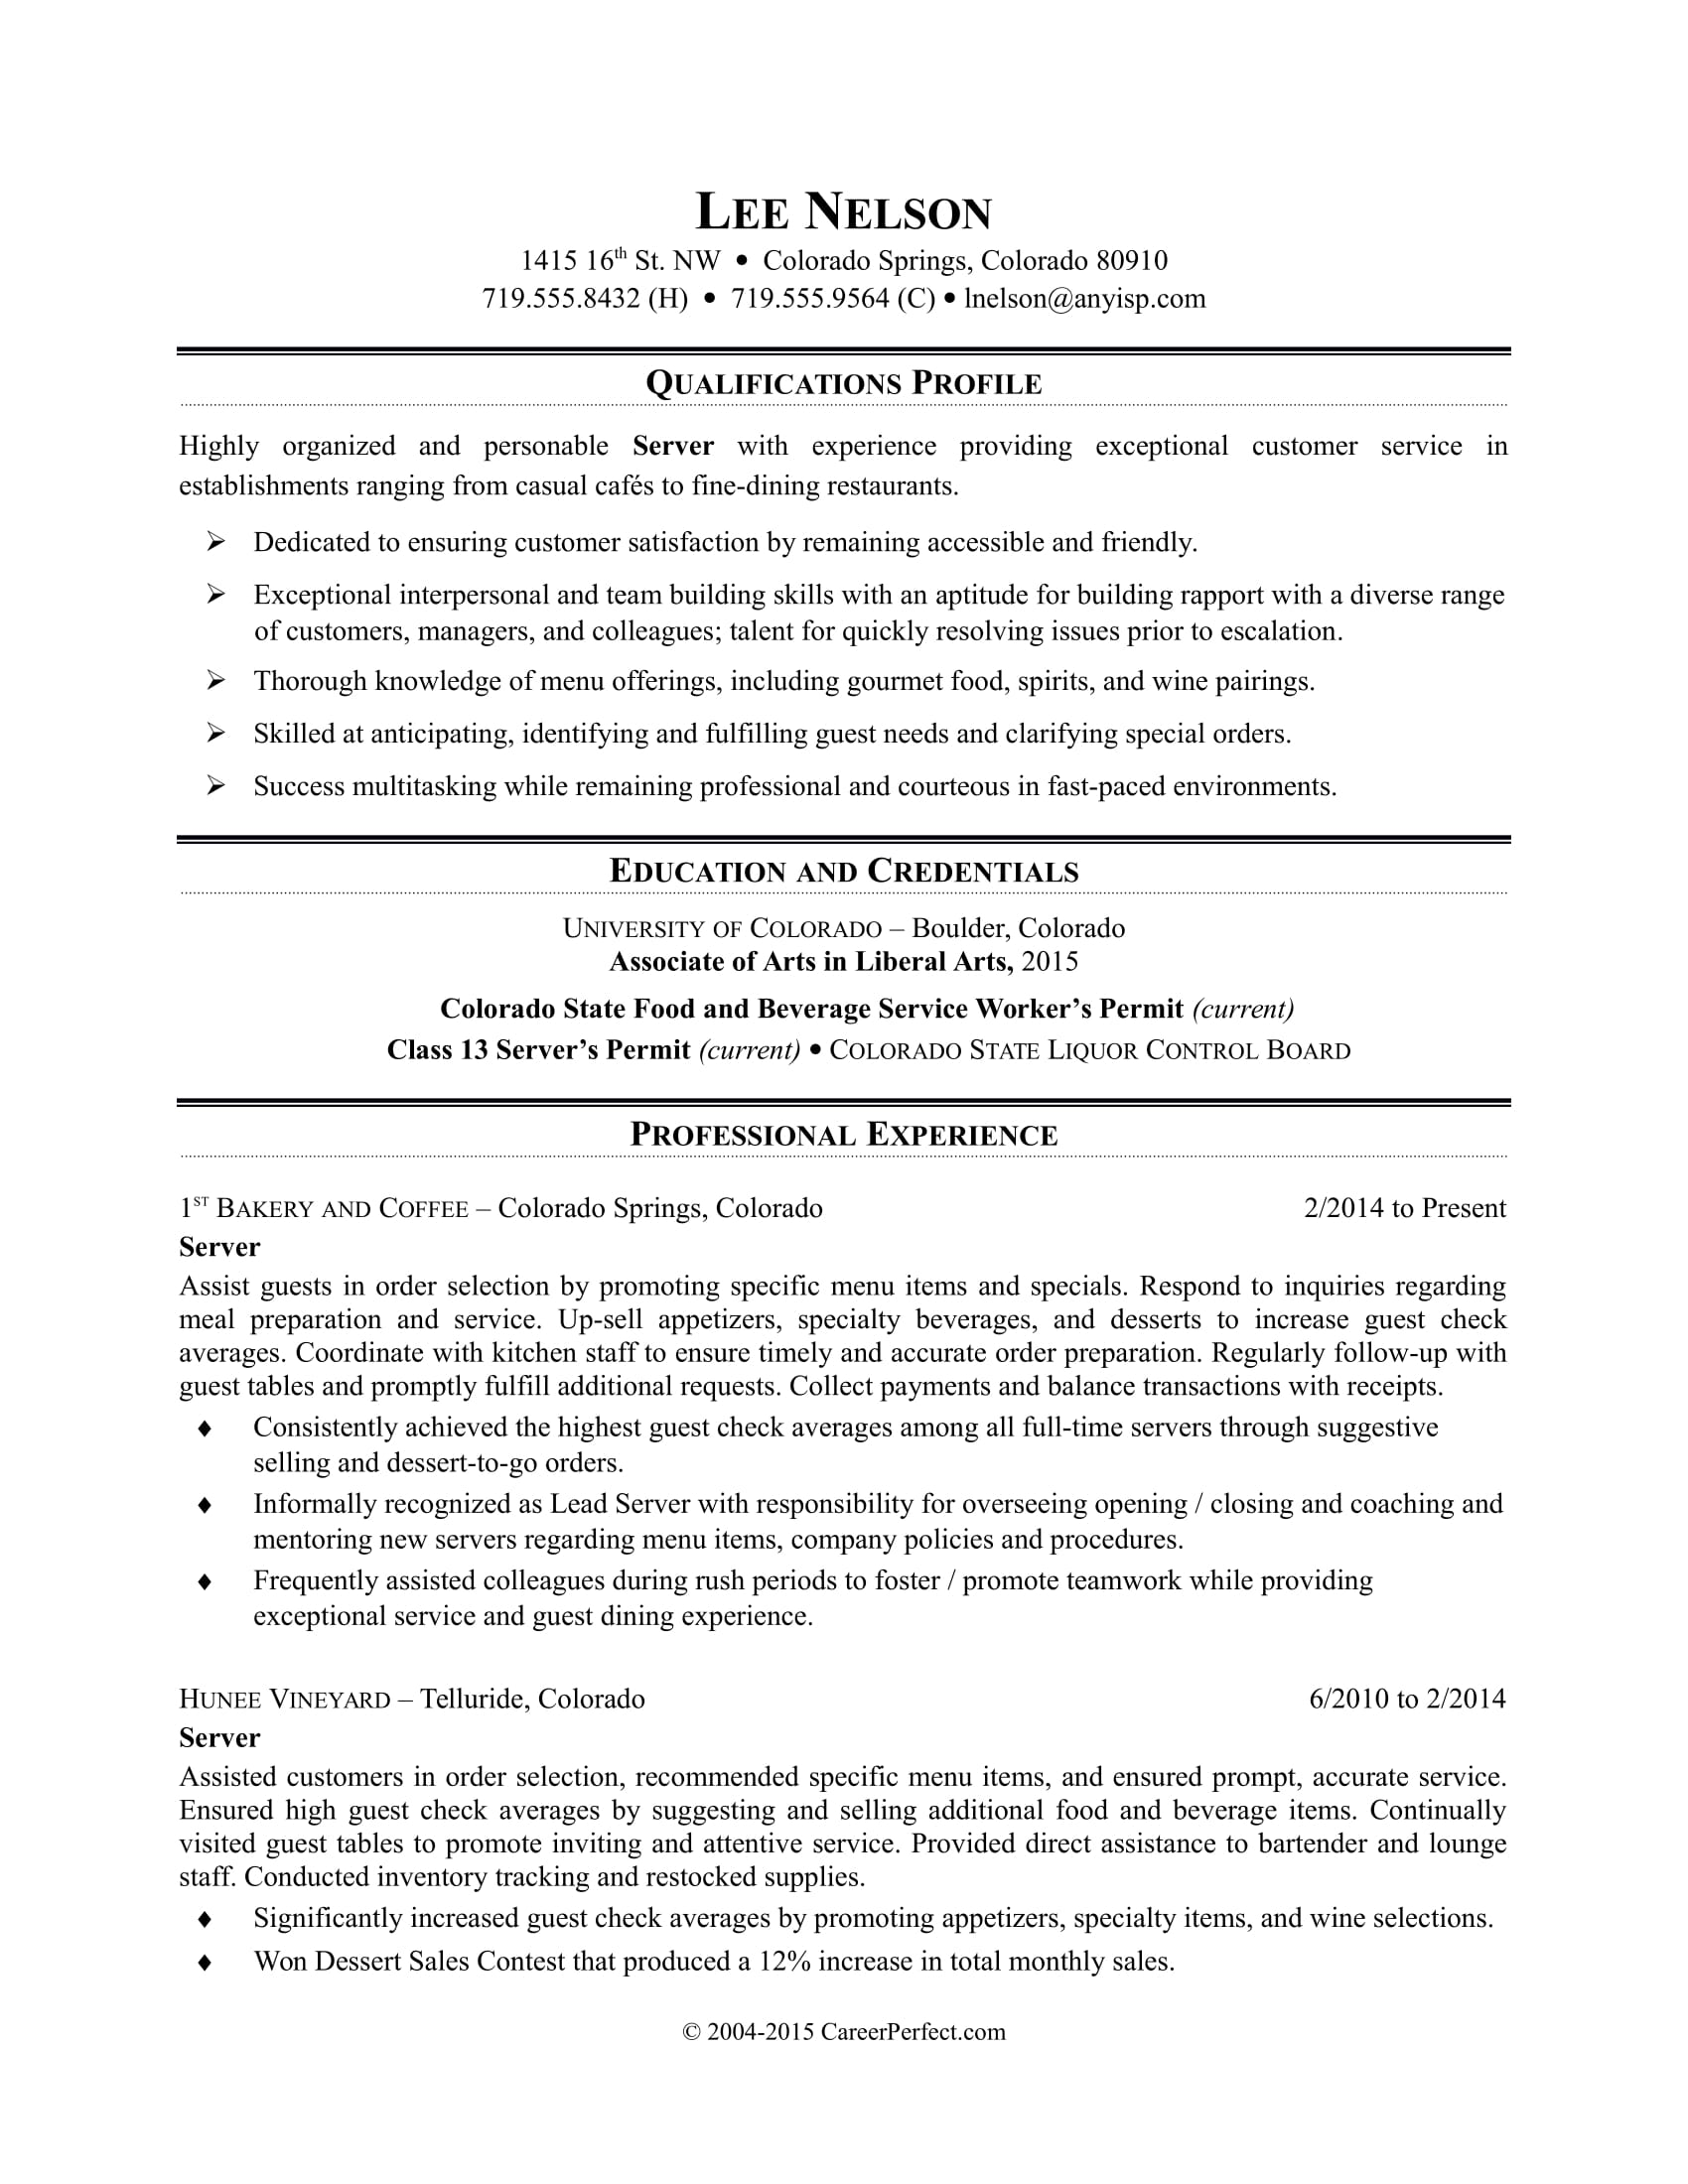 restaurant server resume sample  monstercom - sample resume for a restaurant server